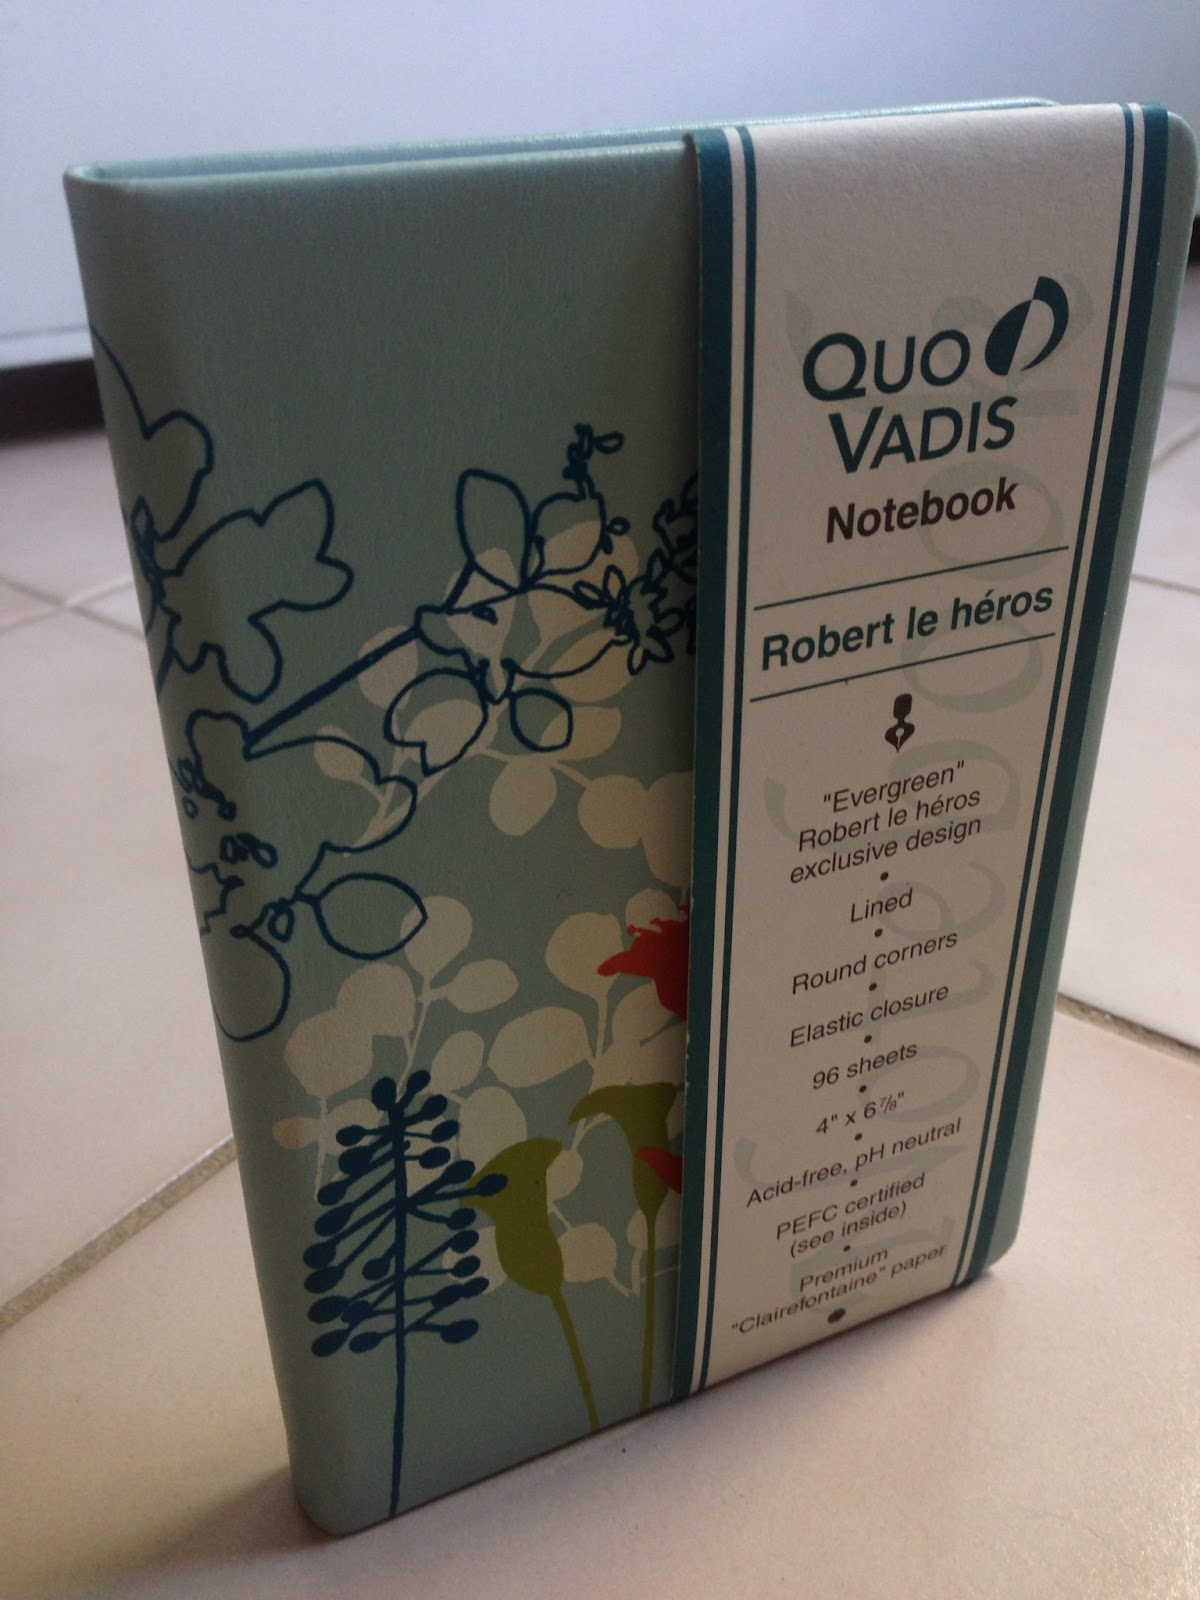 stationery review quo vadis robert le heros notebook i chose the blue covered notebook it is advertised as the 4 x 6 size and has paper measuring 4 x 6 7 8 which is a very easily portable size